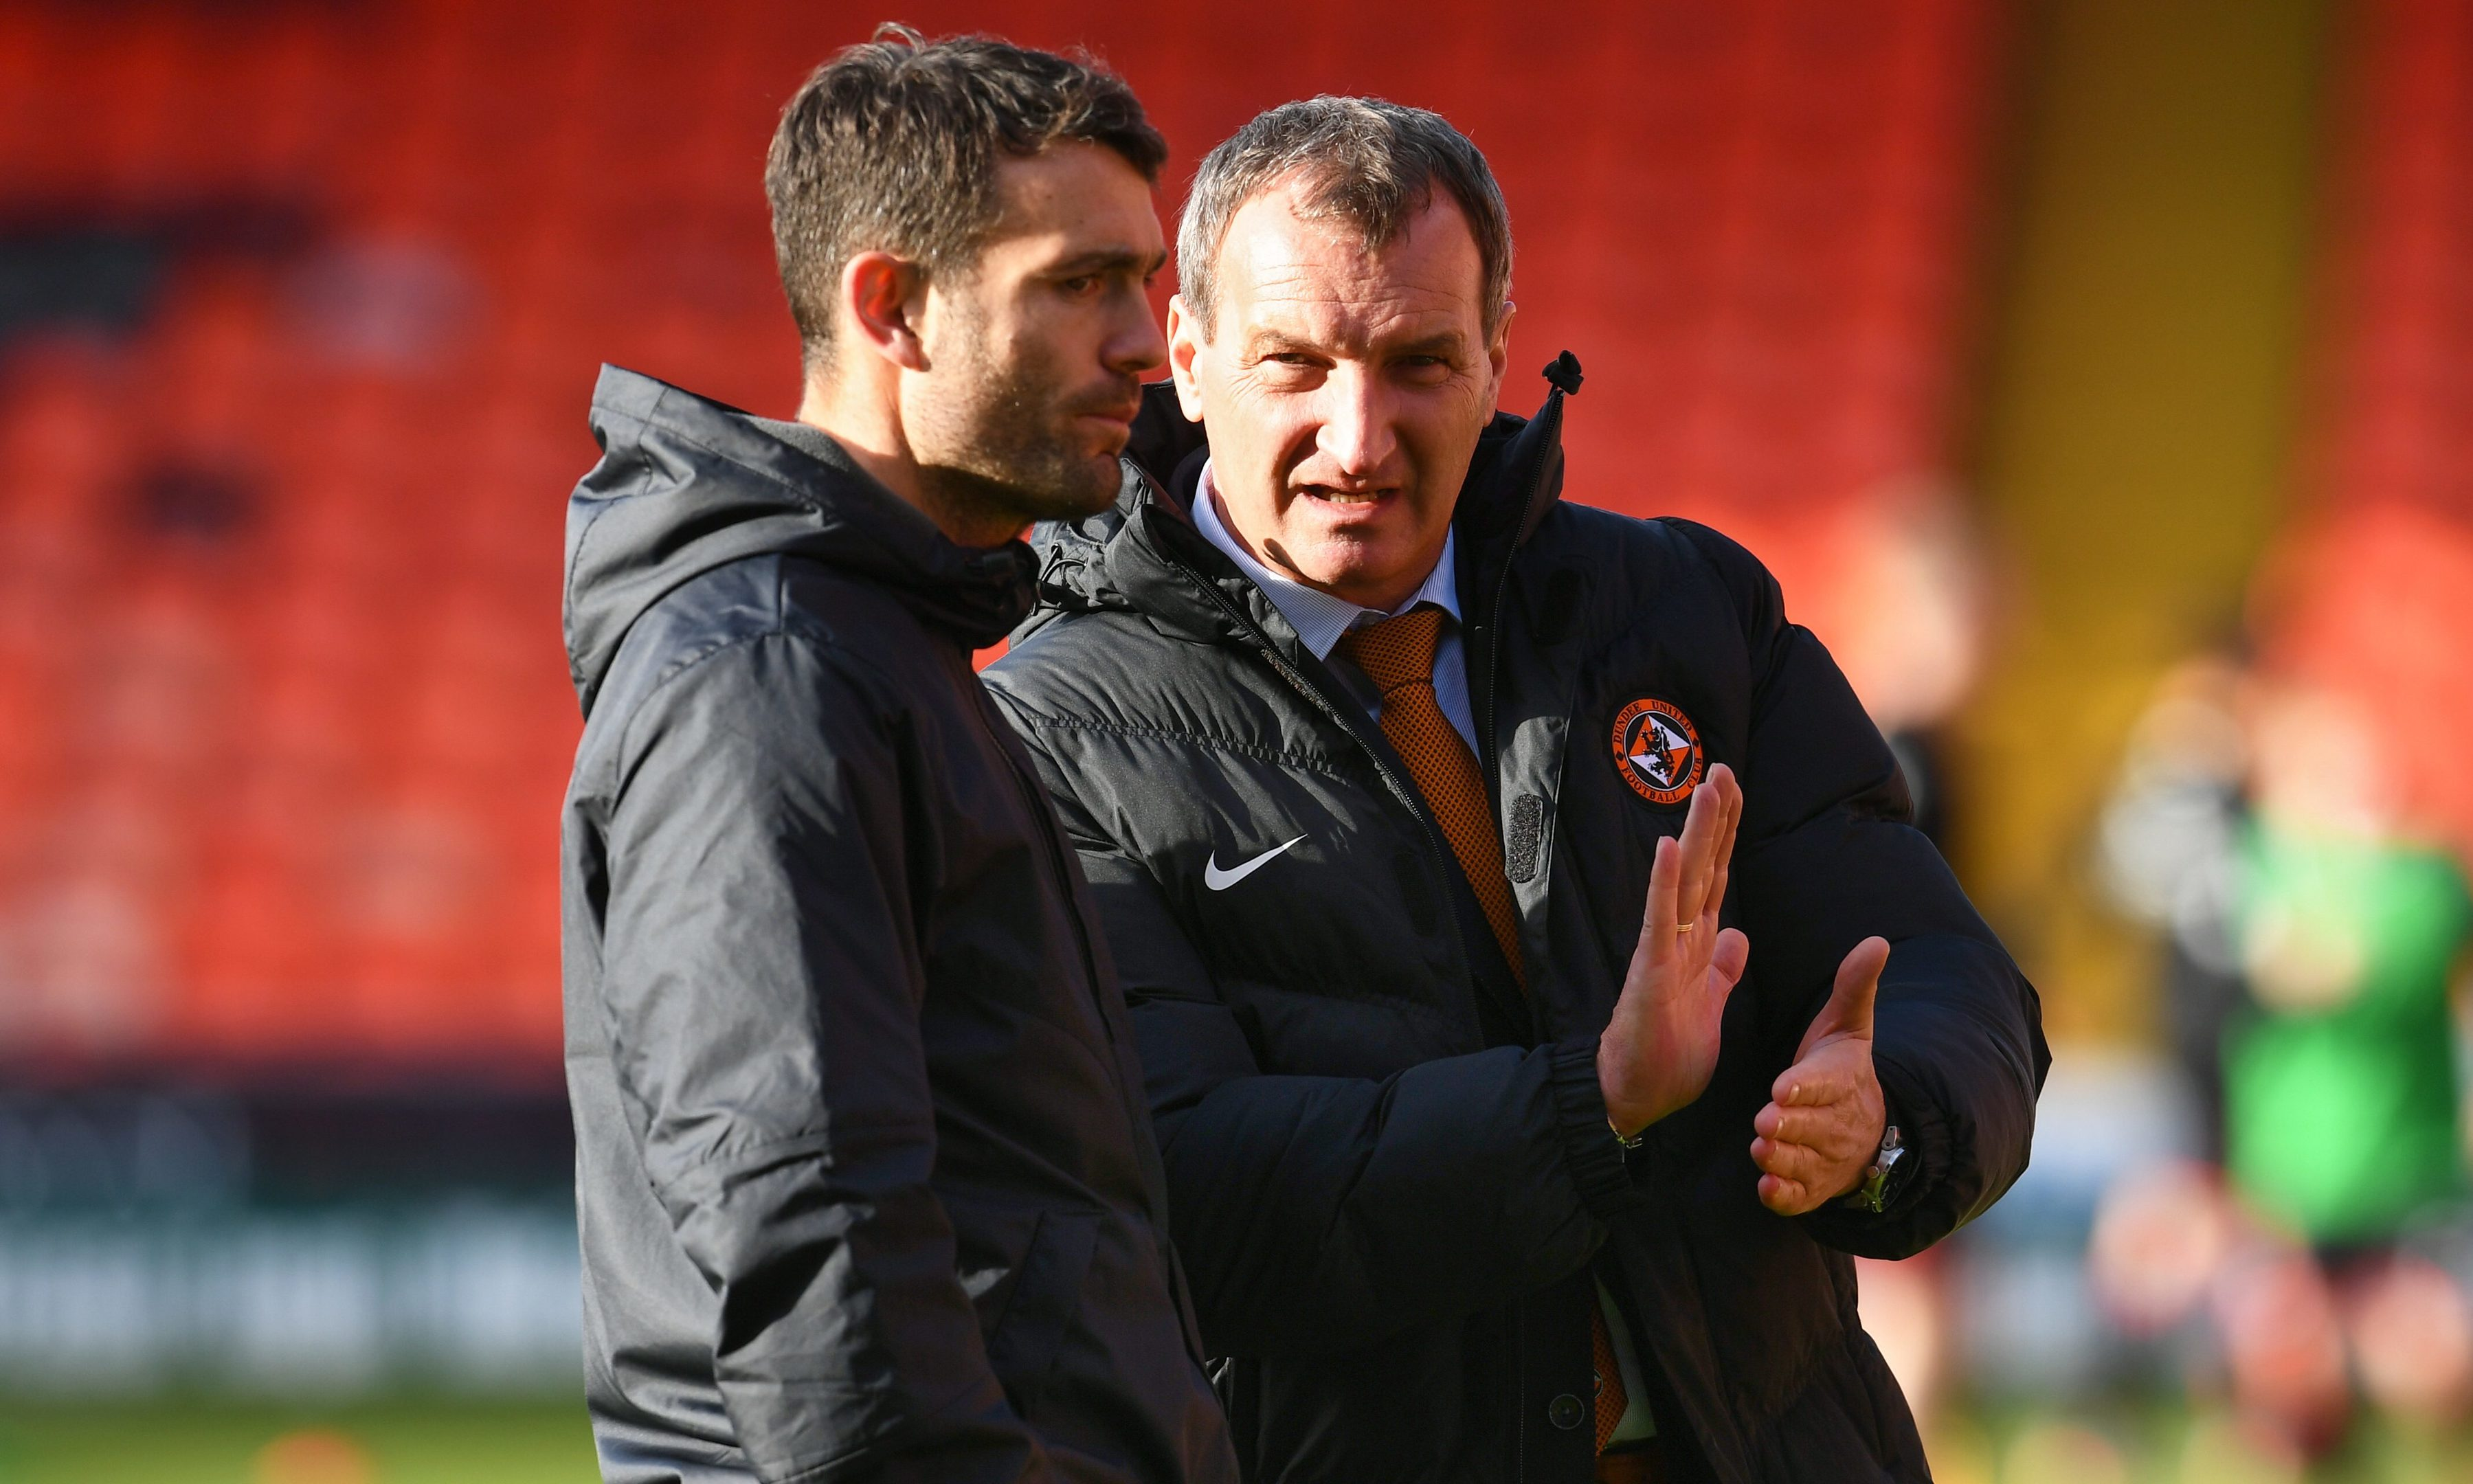 Dundee United's new boss Csaba Laszlo (right) with his assistant manager Laurie Ellis